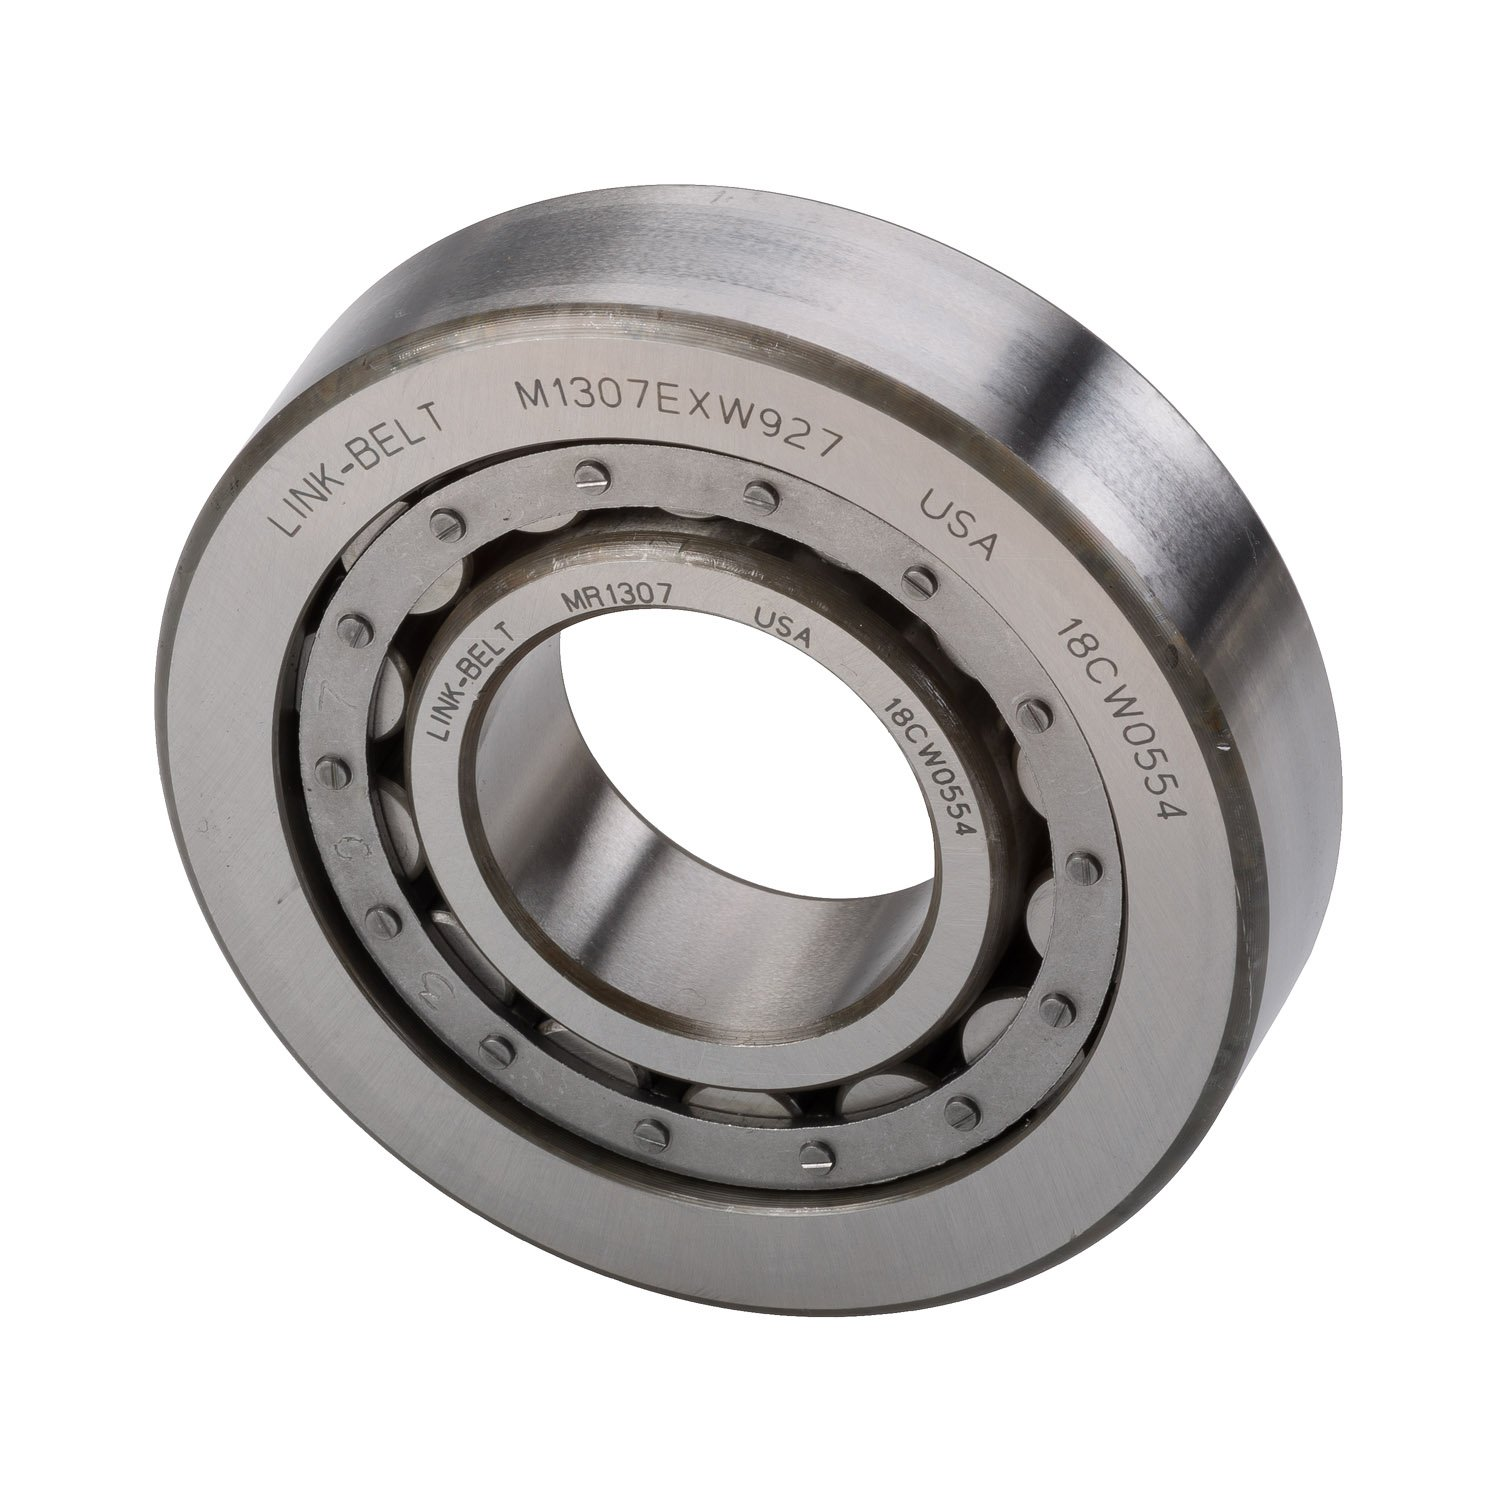 National MR1307EX Cylindrical Bearing Assembly